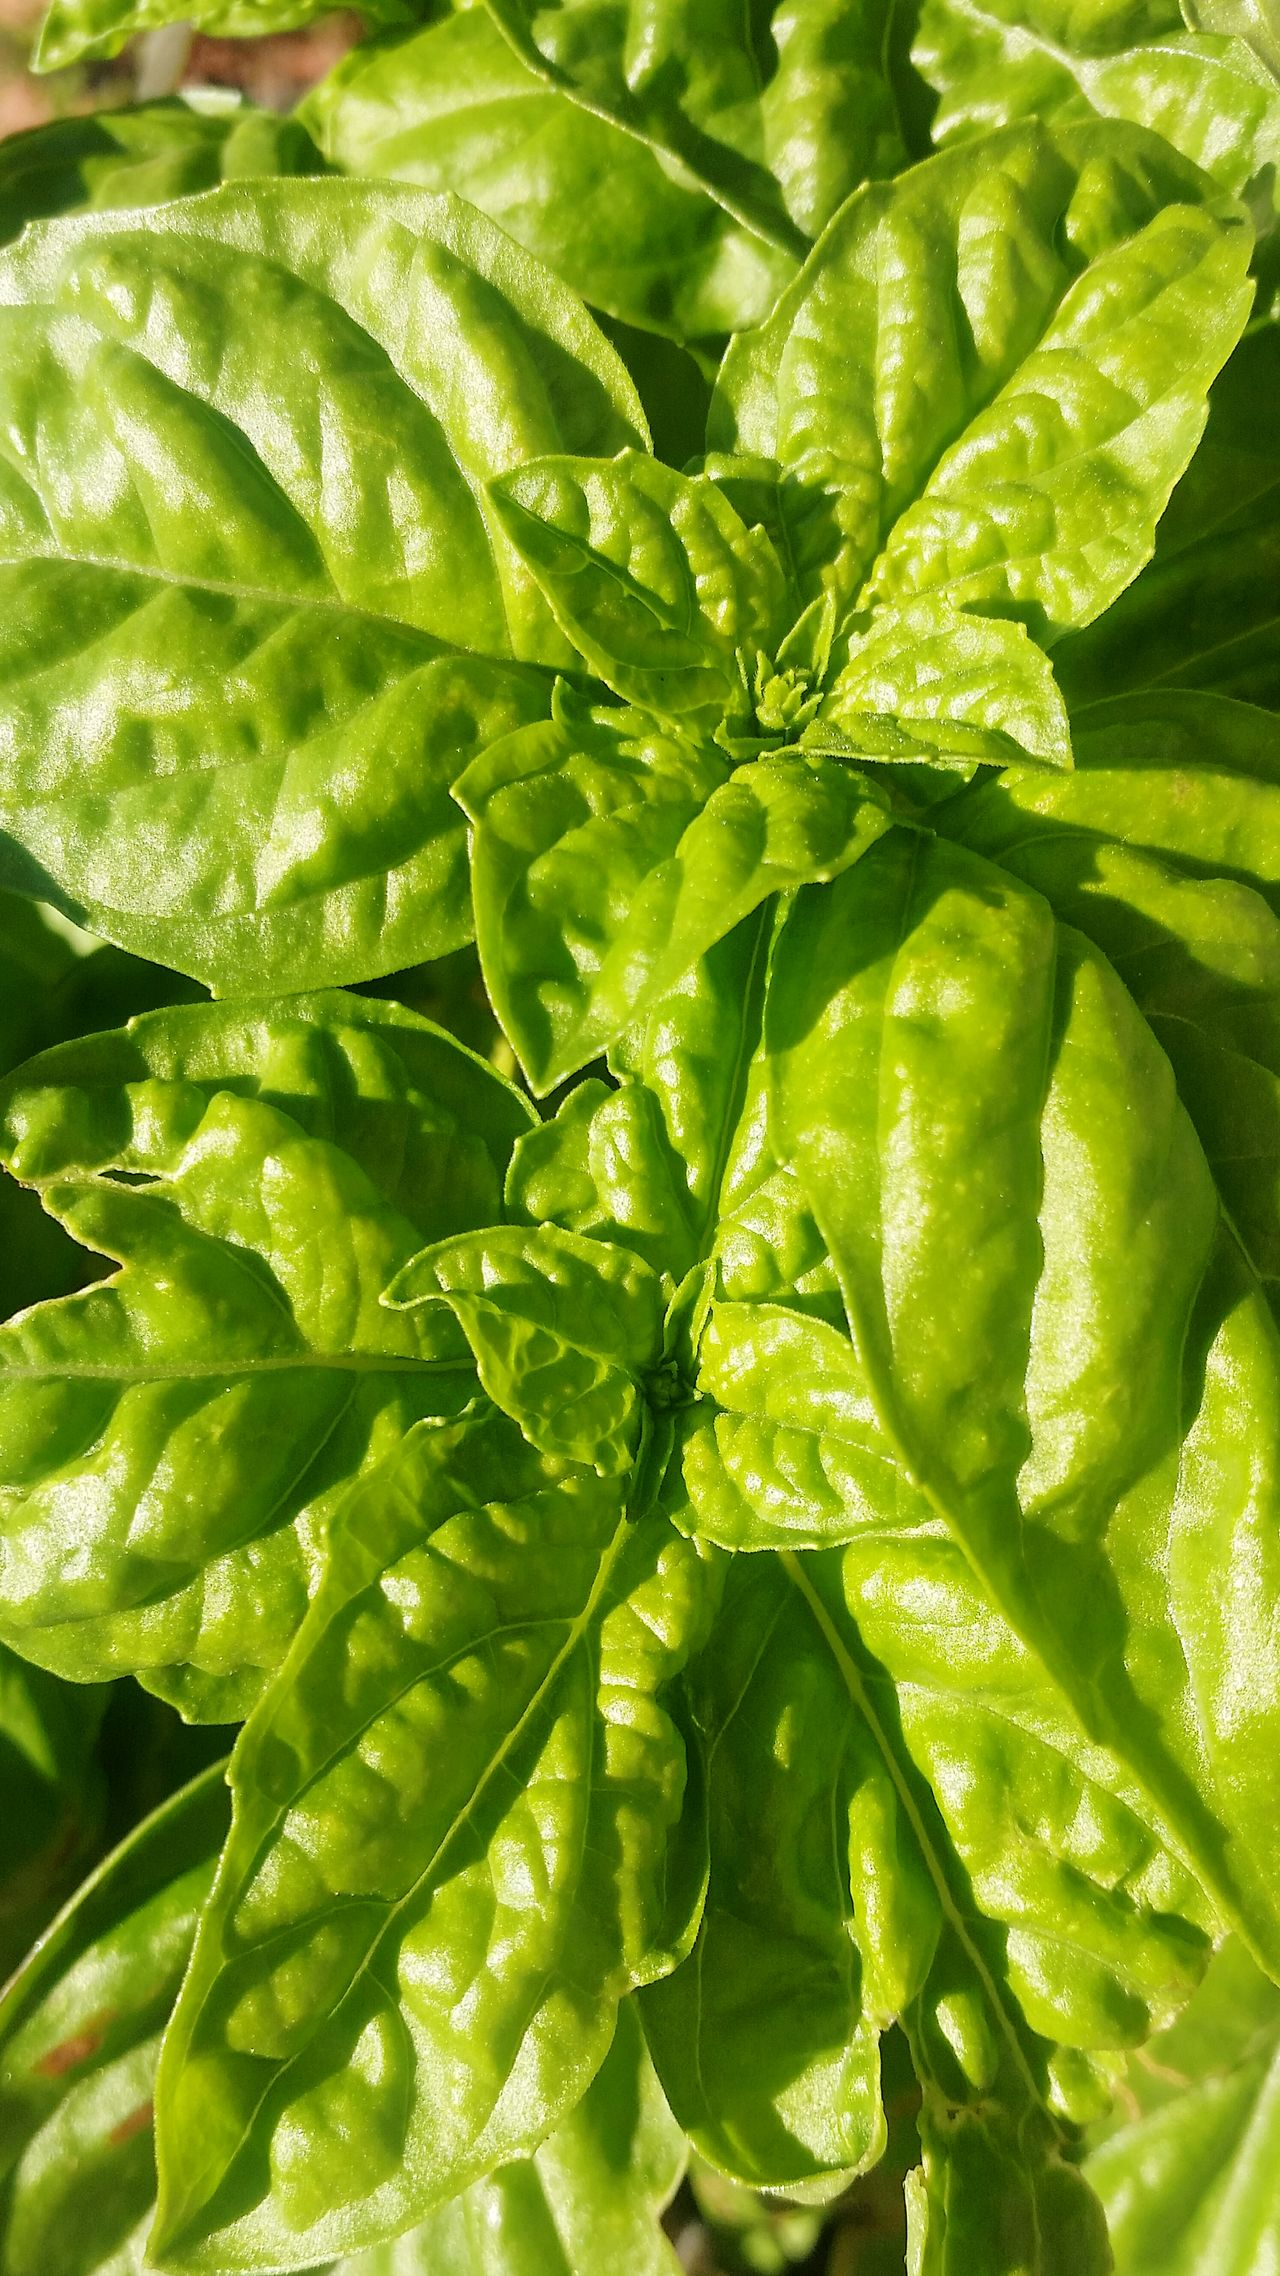 Basilico Italy Food  Food Art Napoli Italy Food Photography Basil Plant Cuke Cake Plant Aromi Odori Cook  Cook Plant Cooking At Home Cooking IngredientsBasil Plant Sea Ocean Basil Home Greenhouse Green Color Green Plants Green Cooking Italia Green